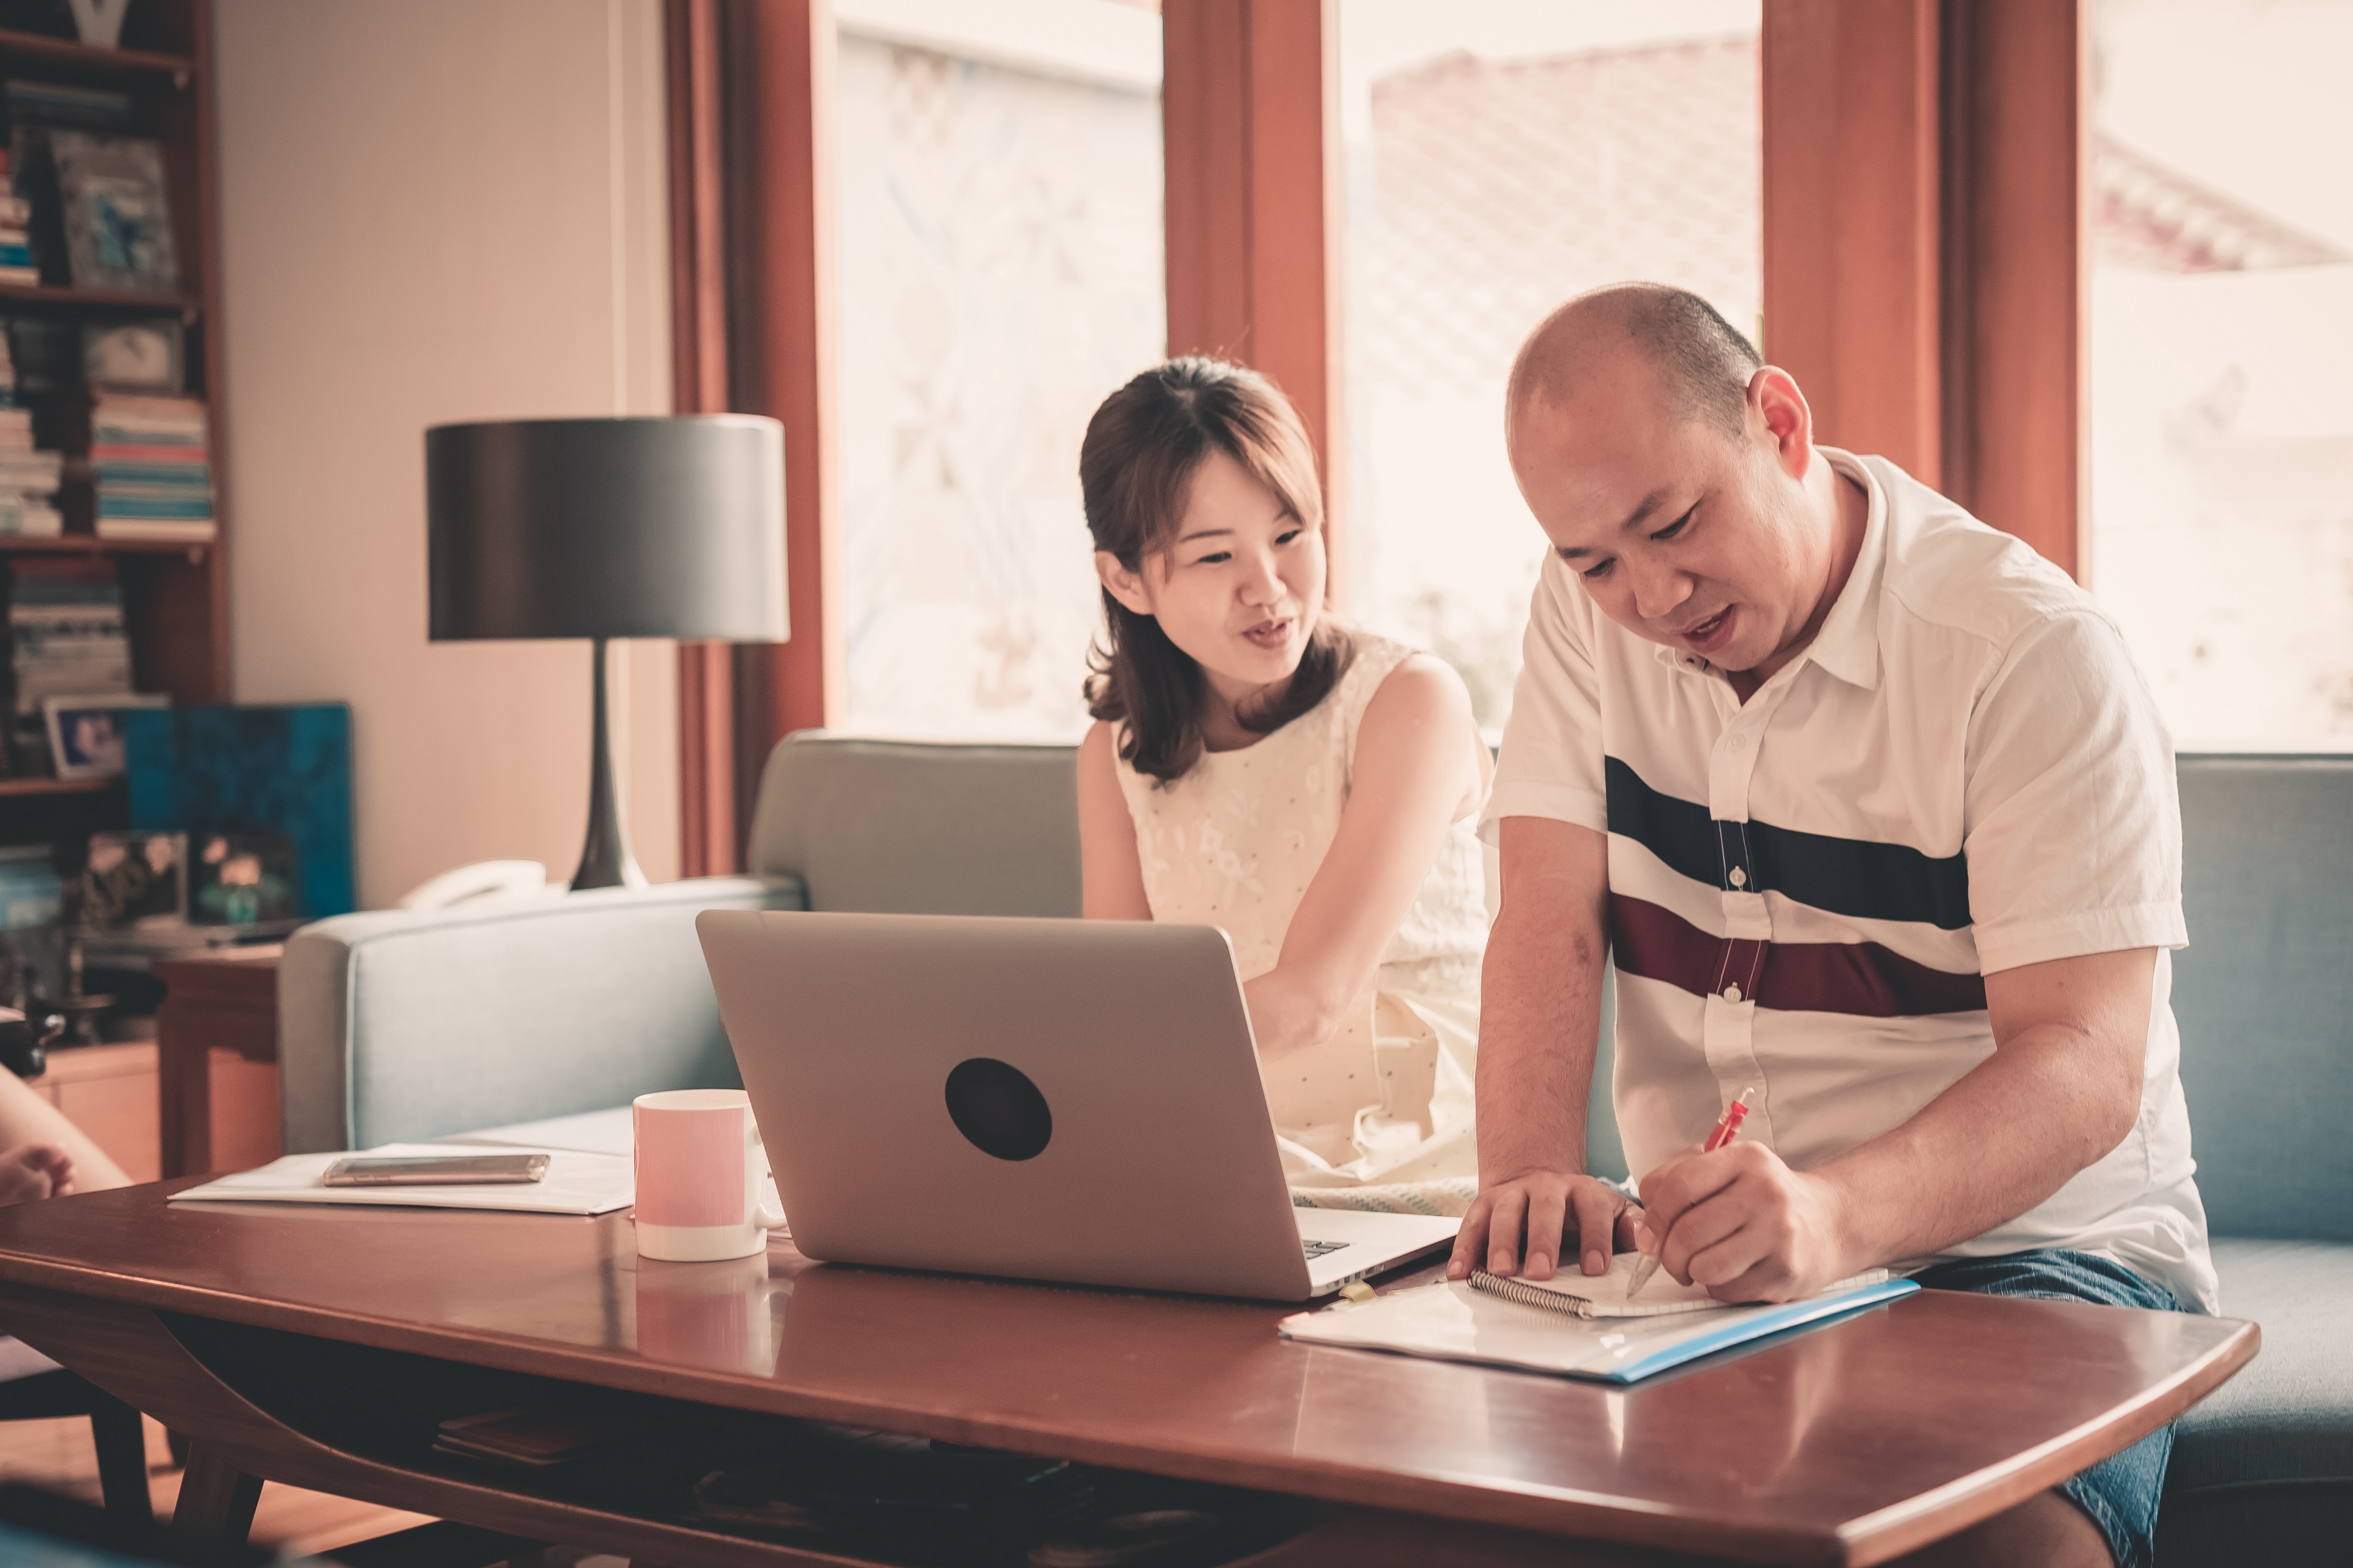 A couple sits on a couch in front of a laptop while one person writes in their notebook.